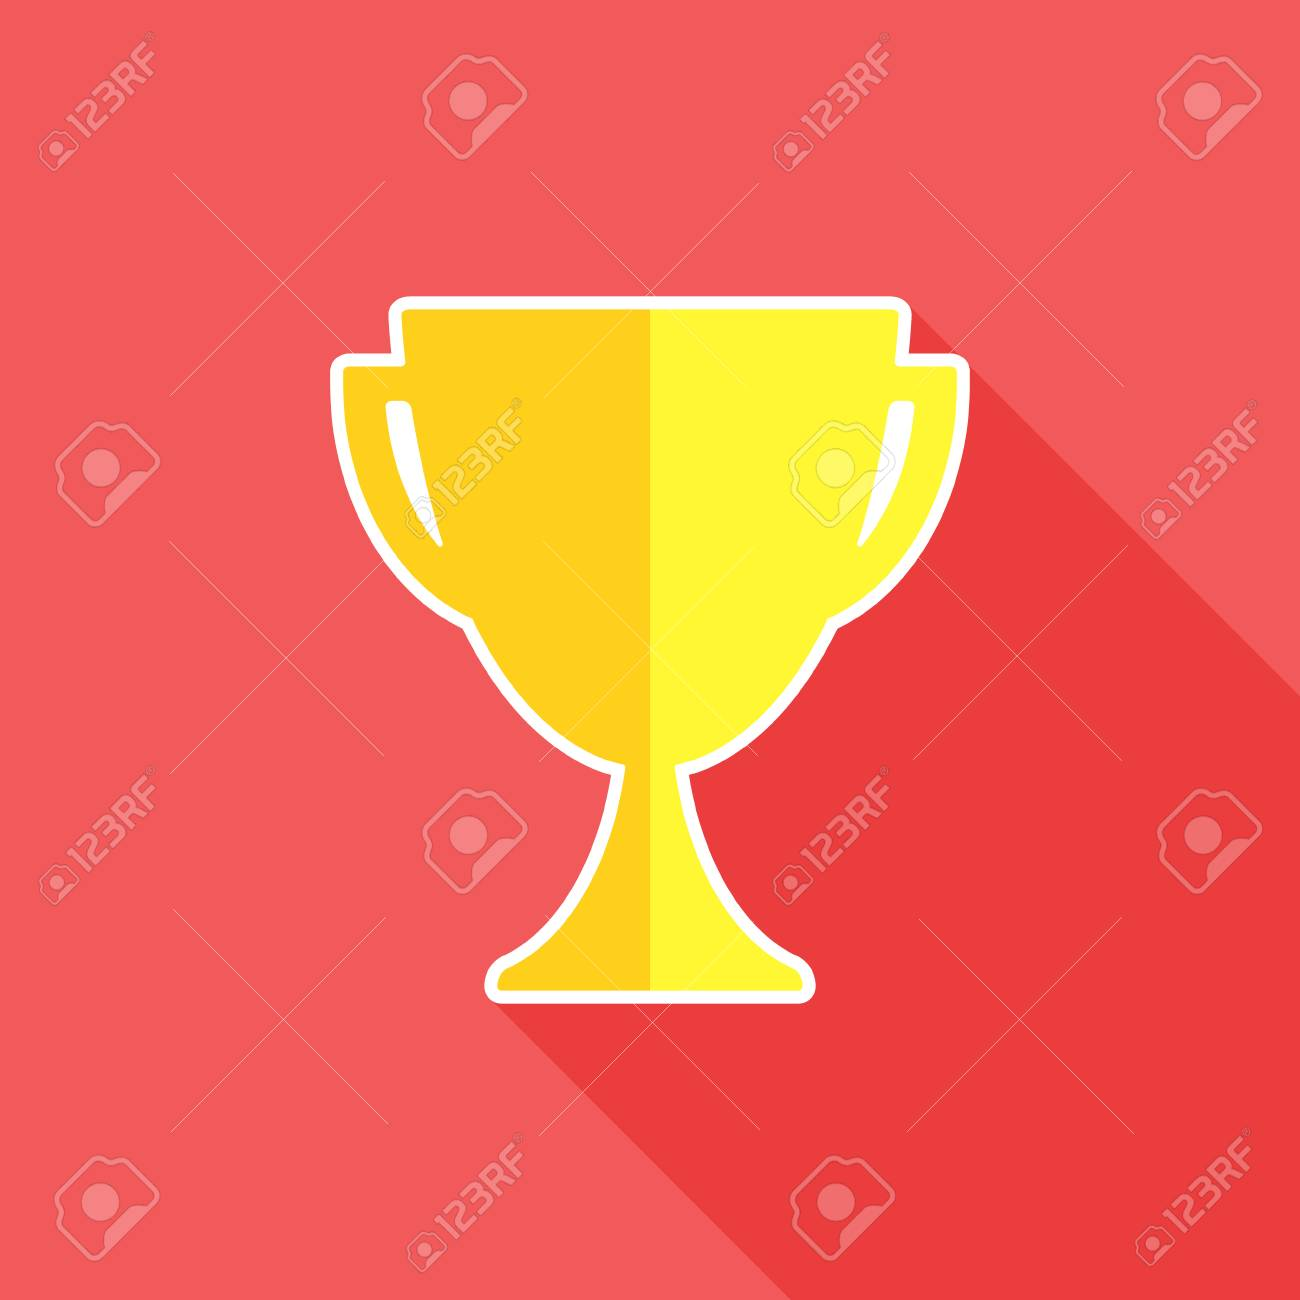 Trophy Flat Icon Trophy Cup Symbol Vector Illustration Royalty